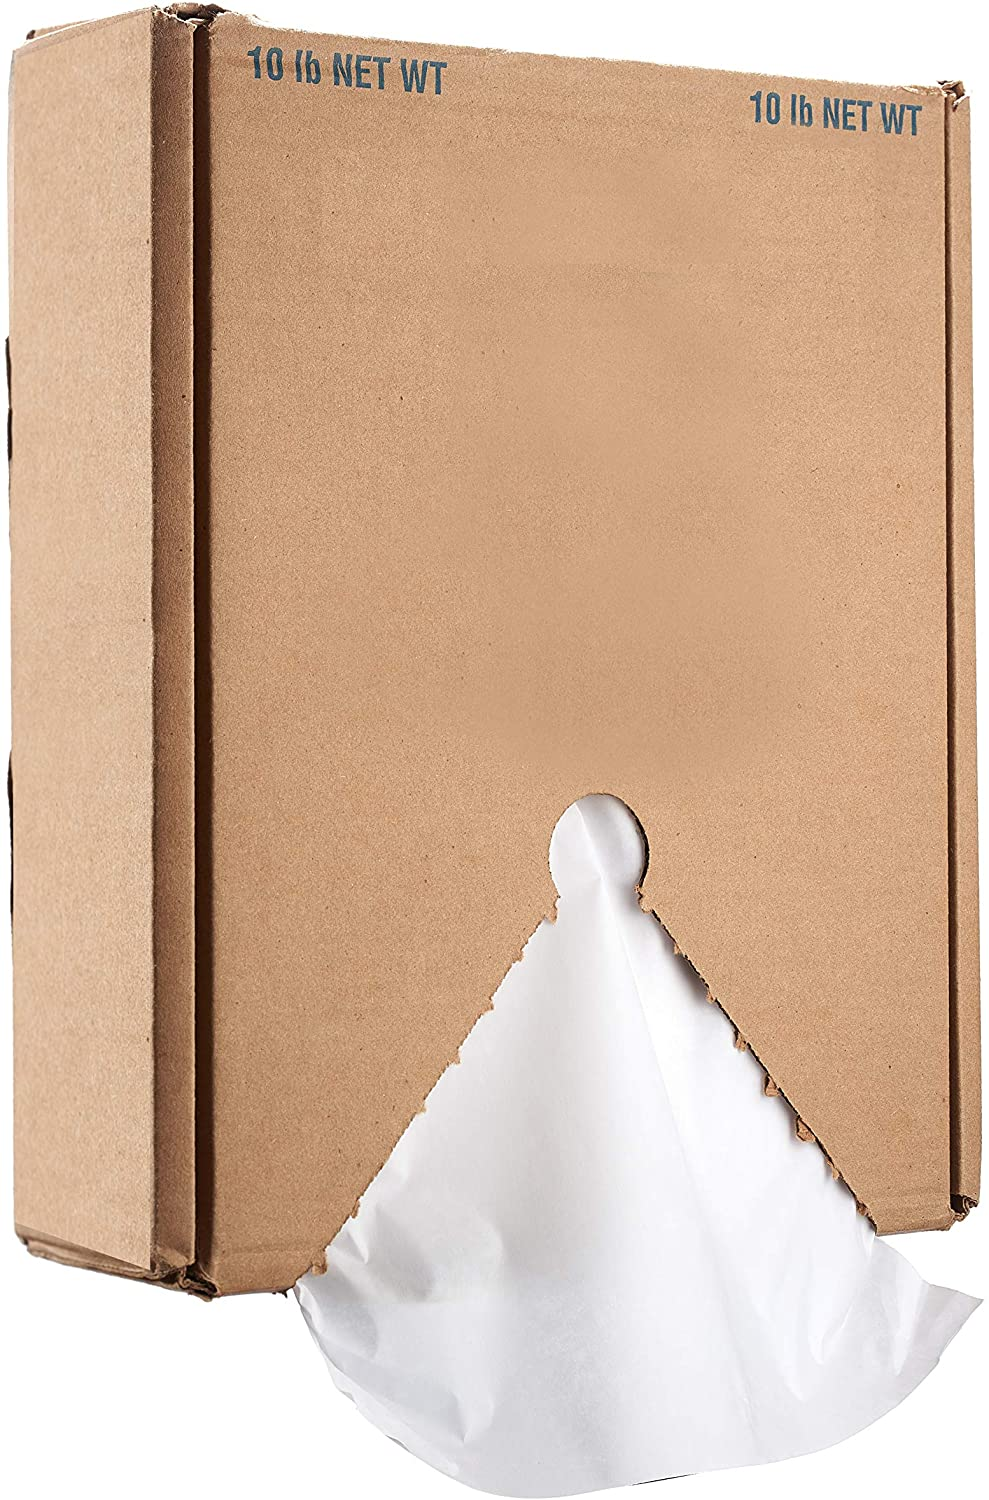 [1 PACK] Wet Waxed Deli Paper Sheets 14x18